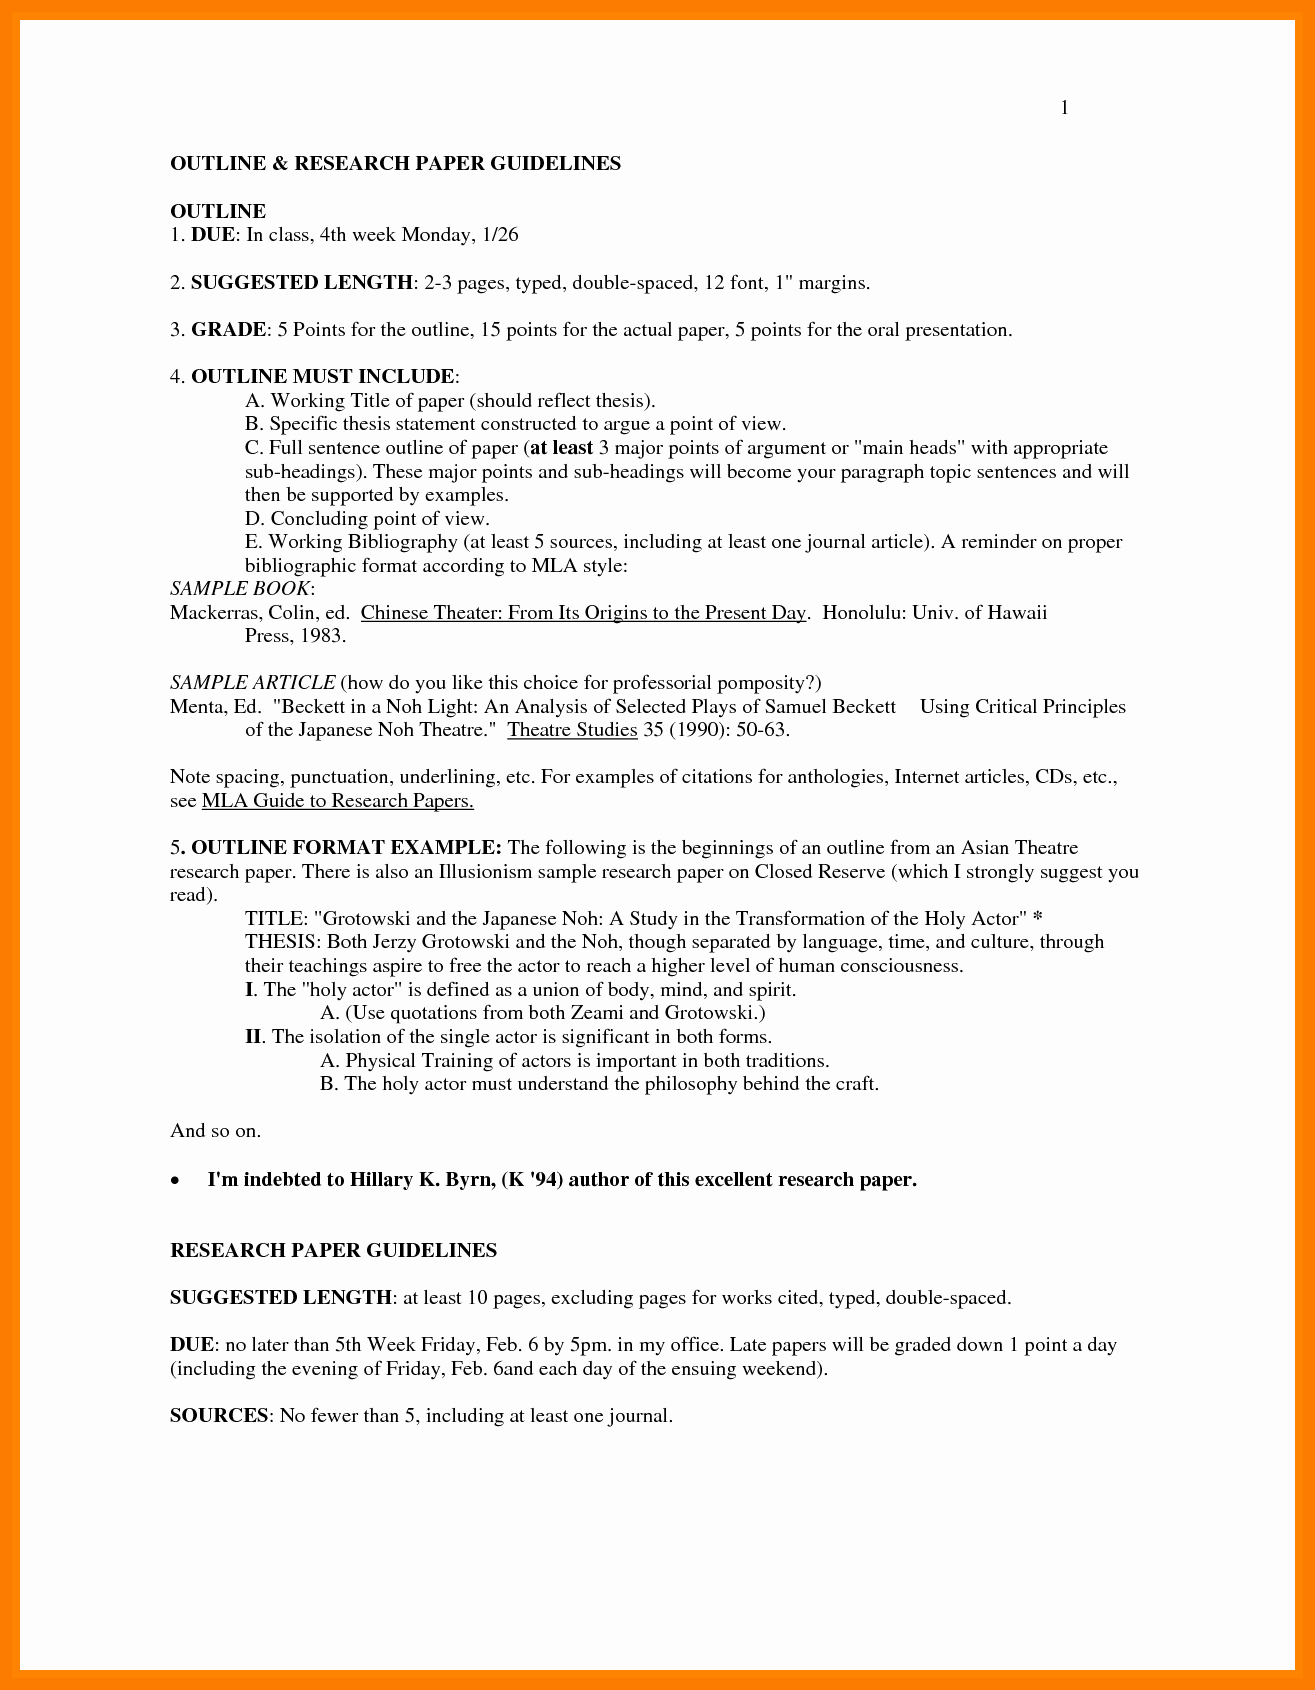 004 Mla Format Research Paper Template Elegant Sample Pages In Style Awesome Outline Example Full